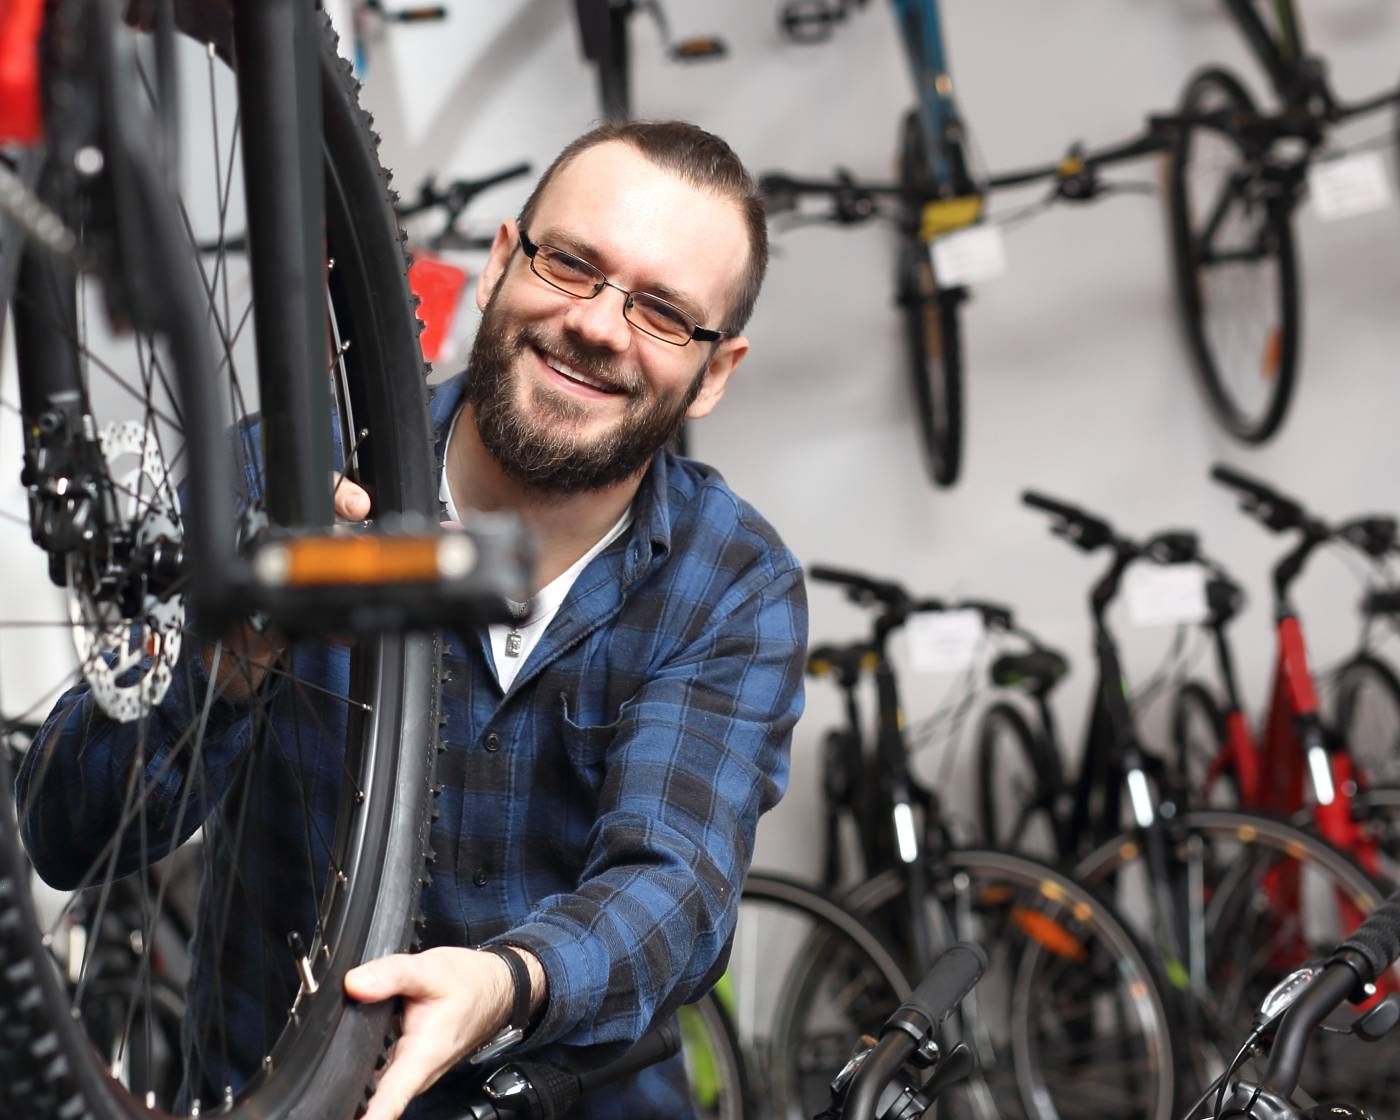 Bloke in a bike shop, surrounded by bikes